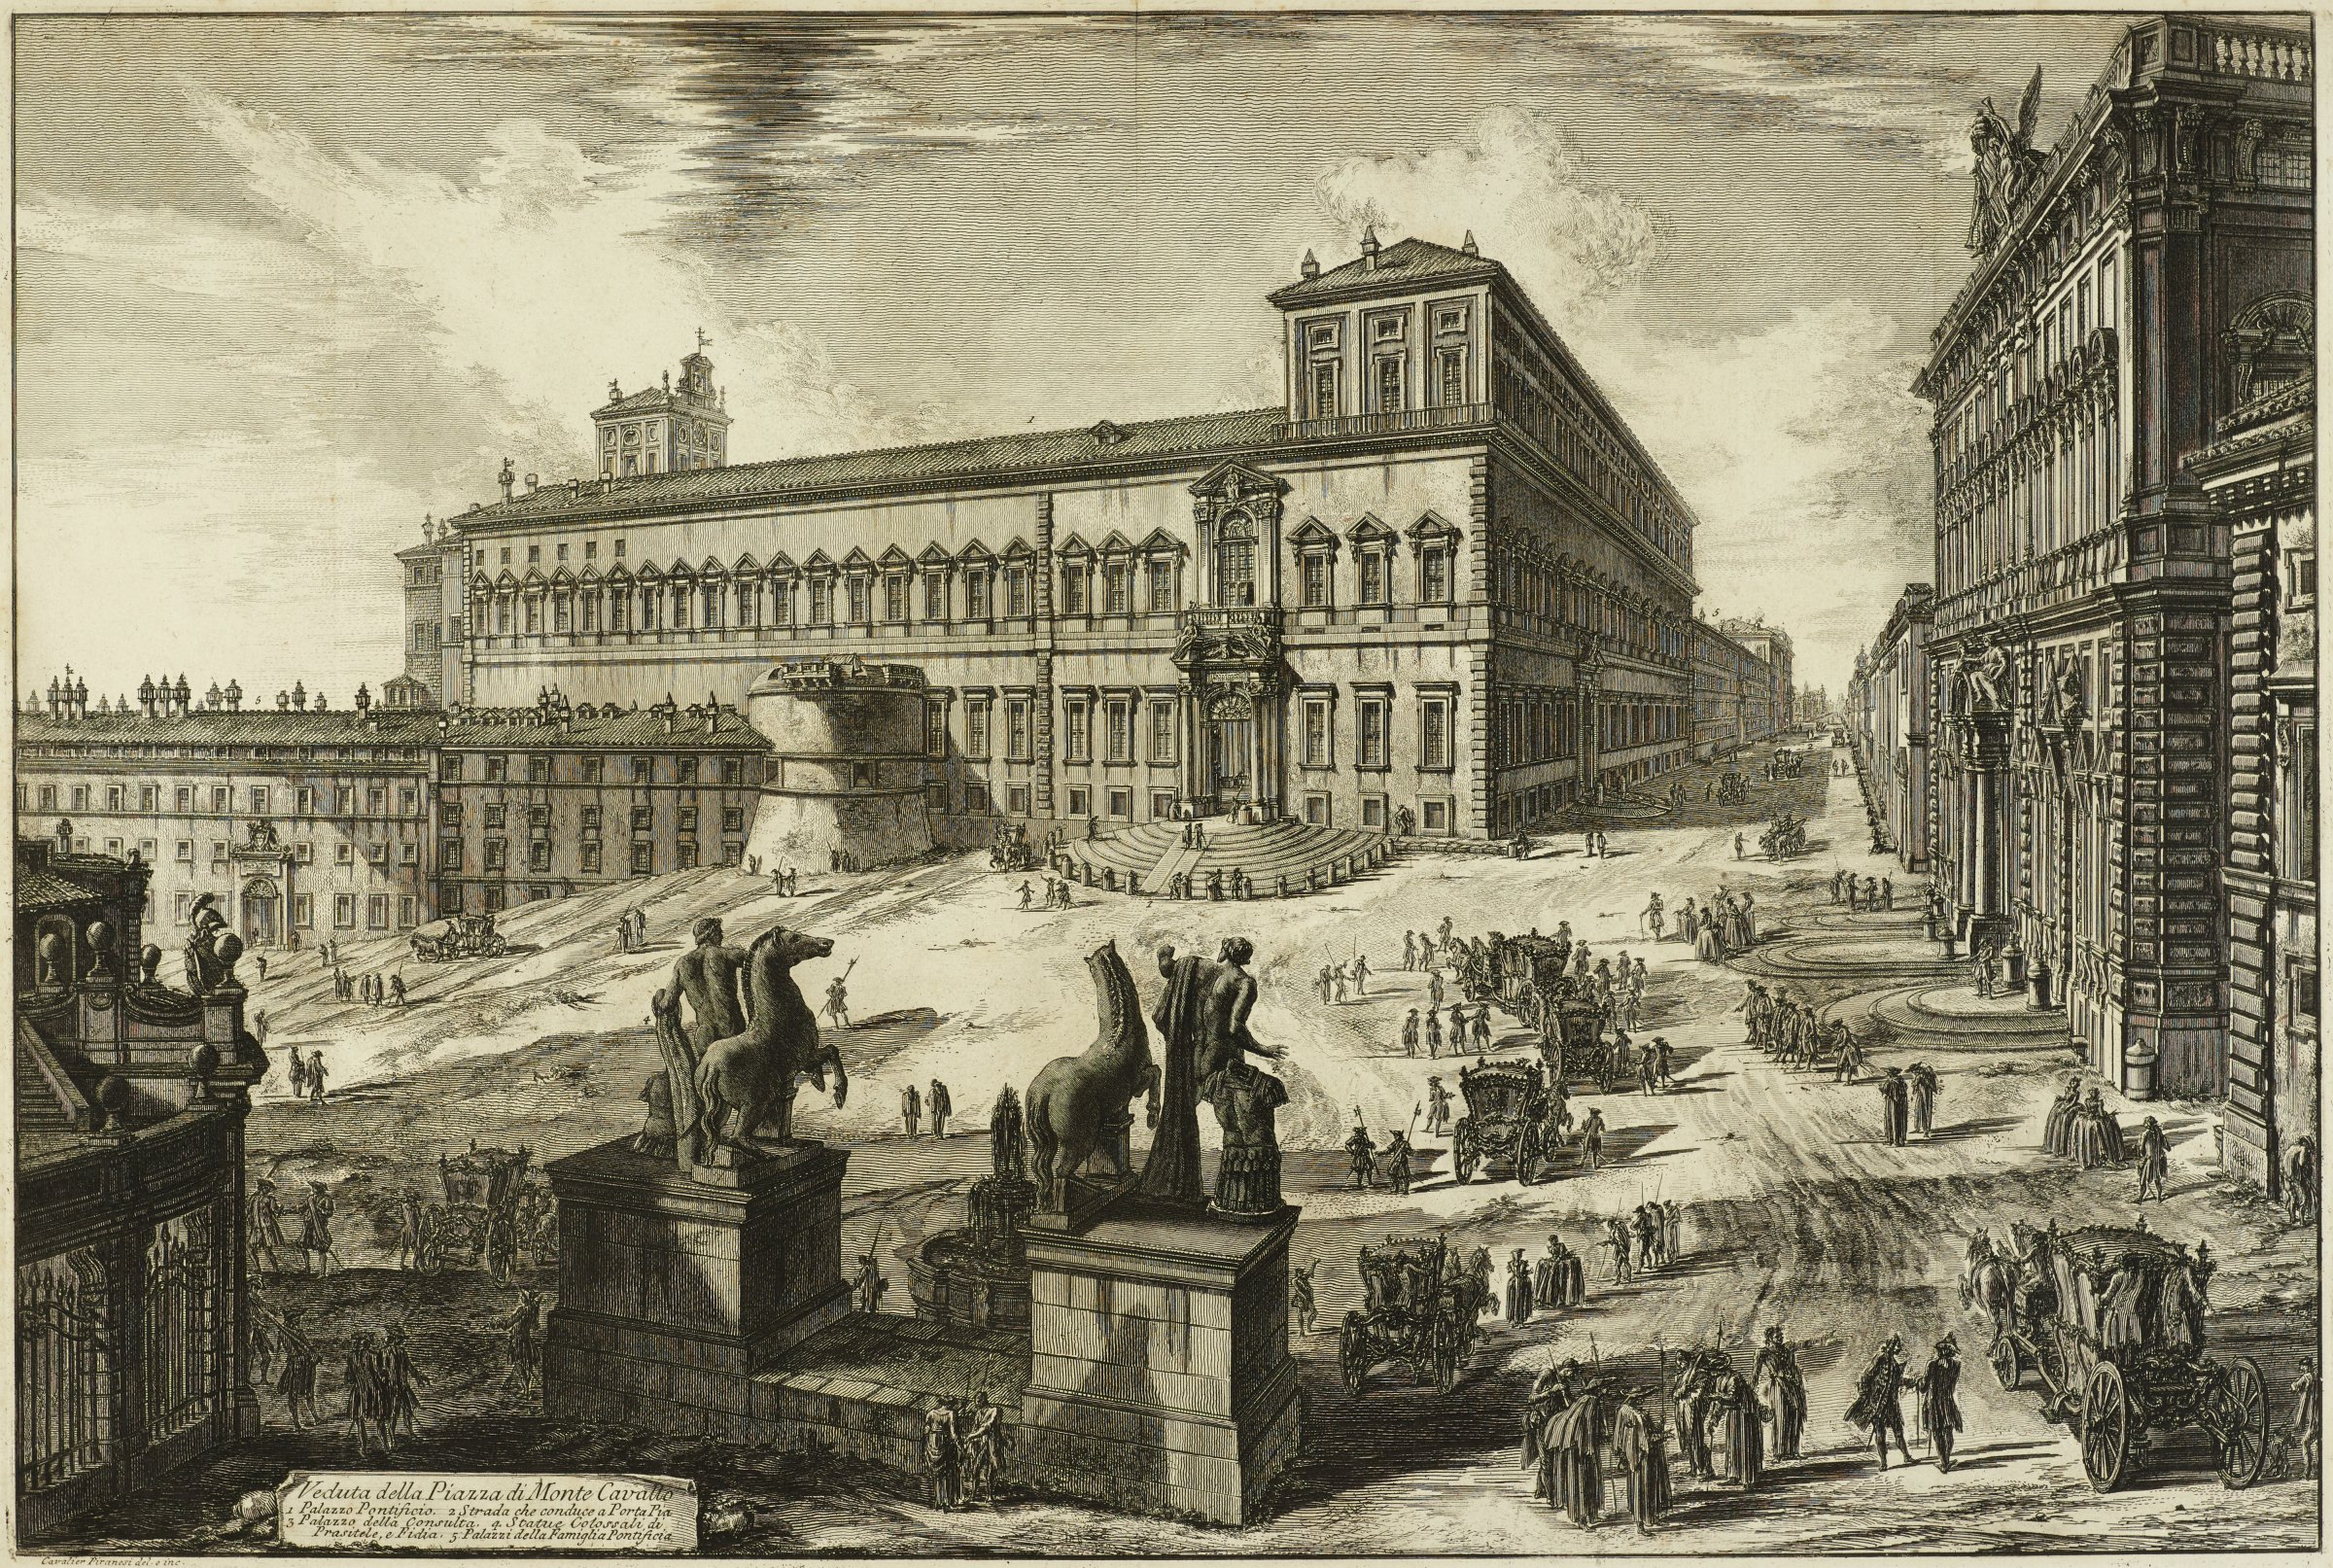 View is from just behind the Horse Tamers statues (before obelisk in place), looking across the piazza (now called Piazza del Quirinale) toward the Palazzo Pontificio (now called Quirinal Palace), and down Via Pia.